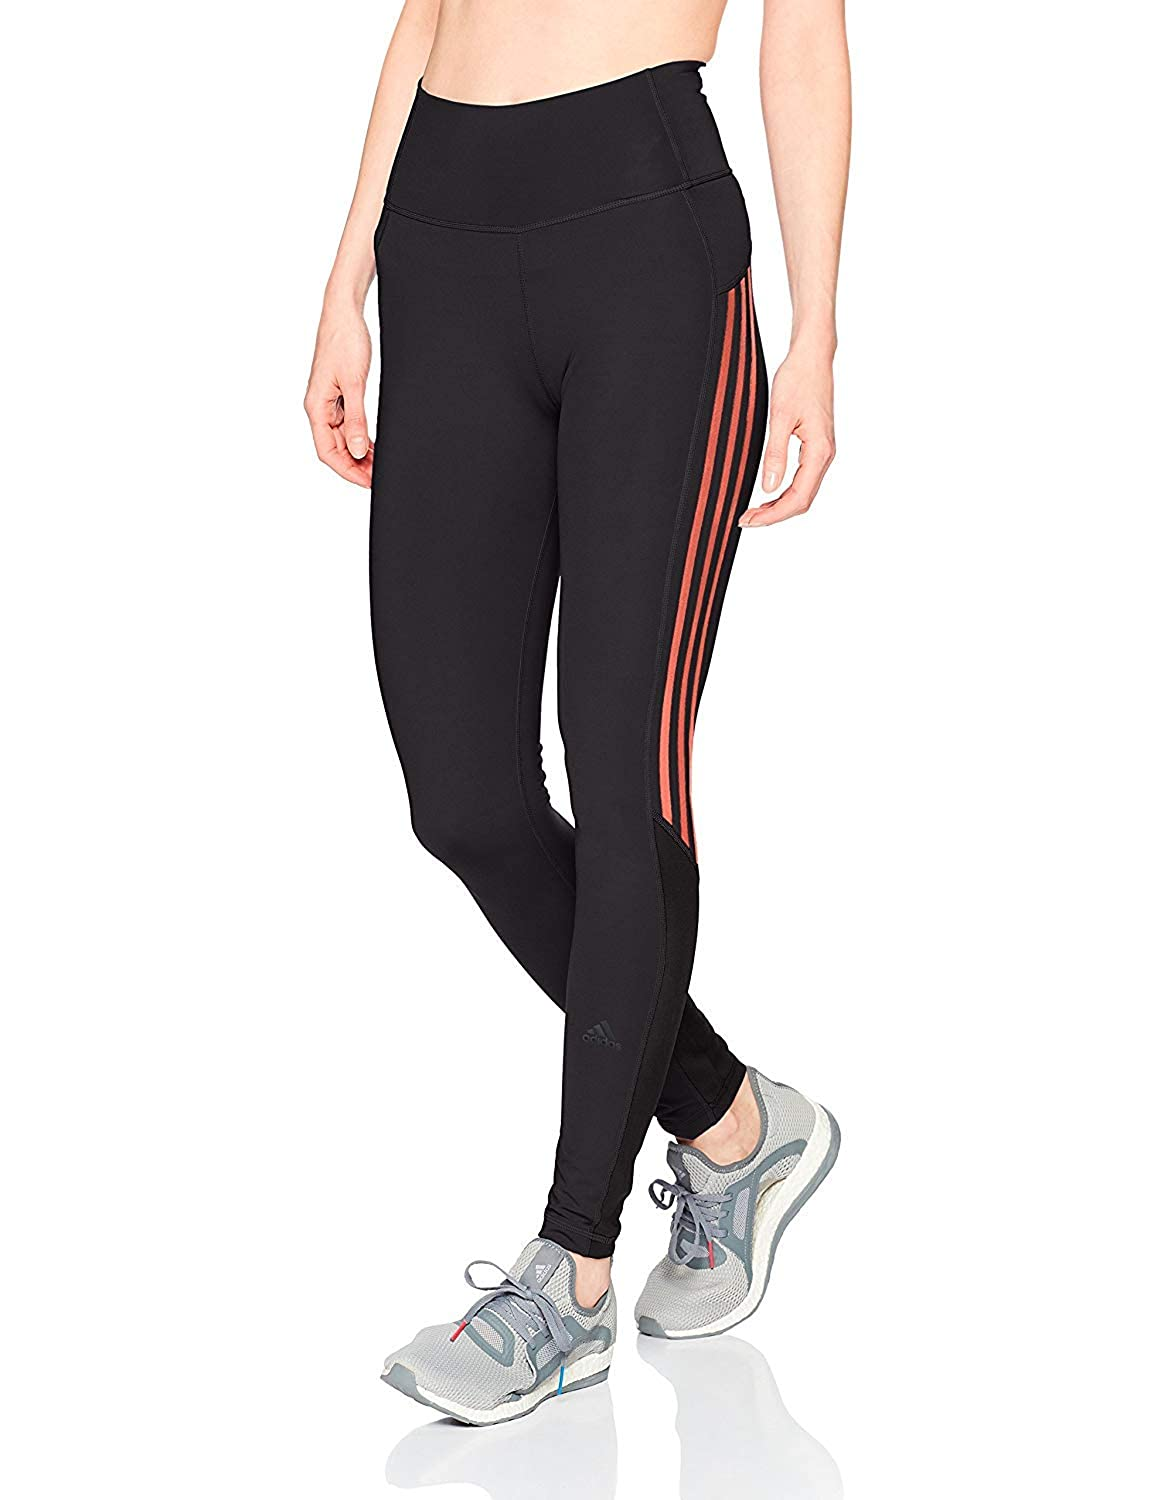 9c93bff6603e9 Amazon.com: adidas Women's Training Believe This High-Rise 3-Stripe 7/8  Tights: Clothing